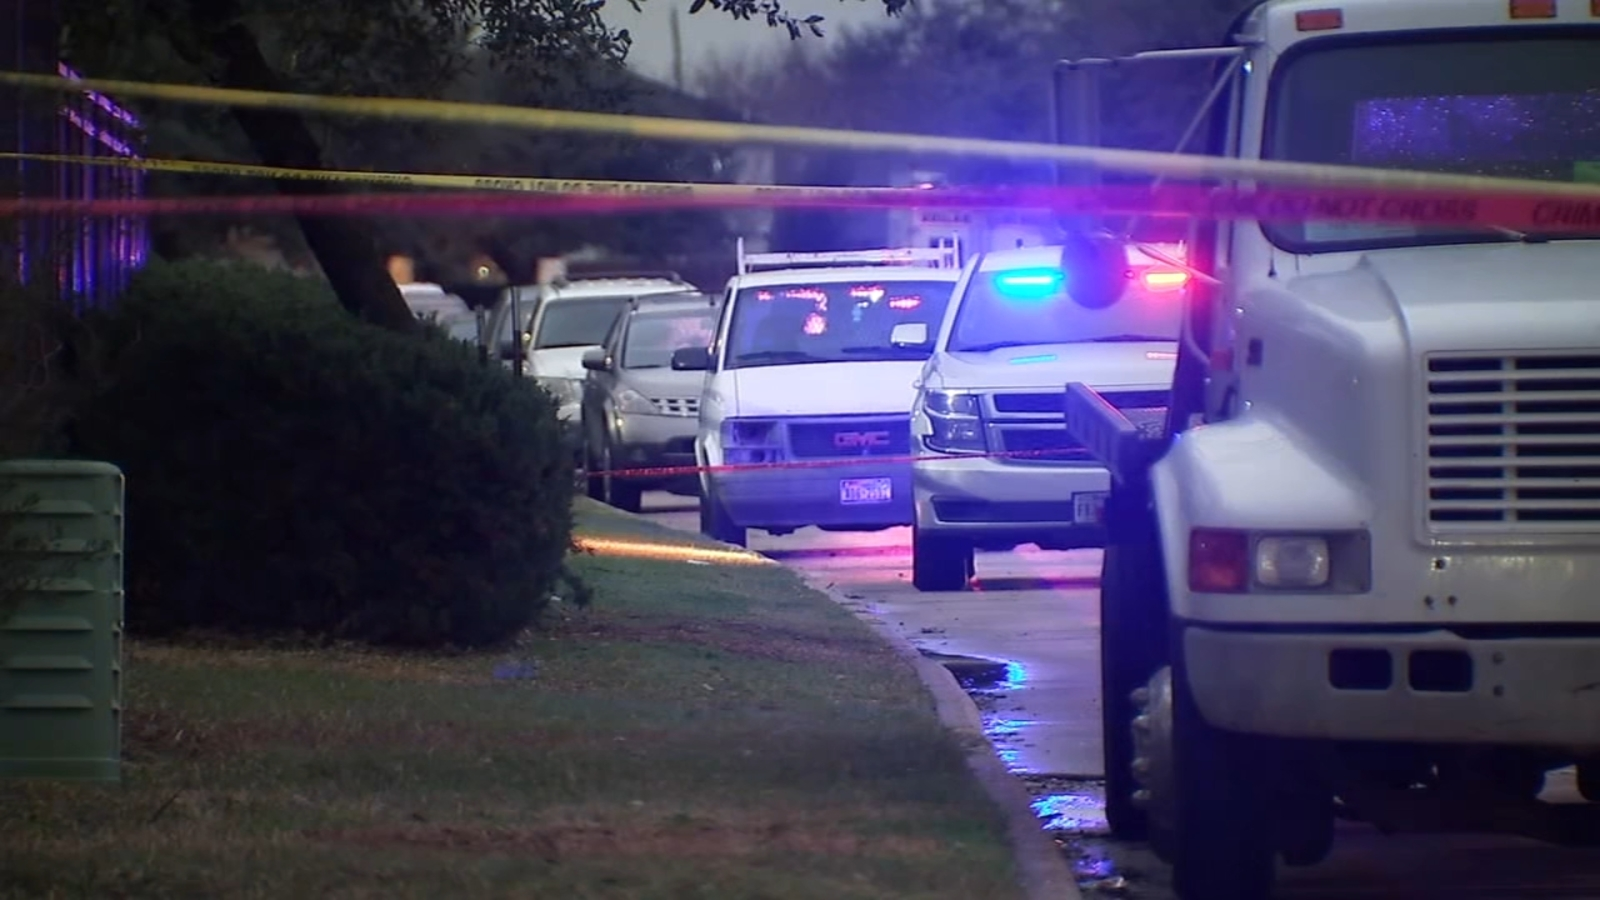 9-year-old girl shot in head in road rage incident in Katy area, sheriff says